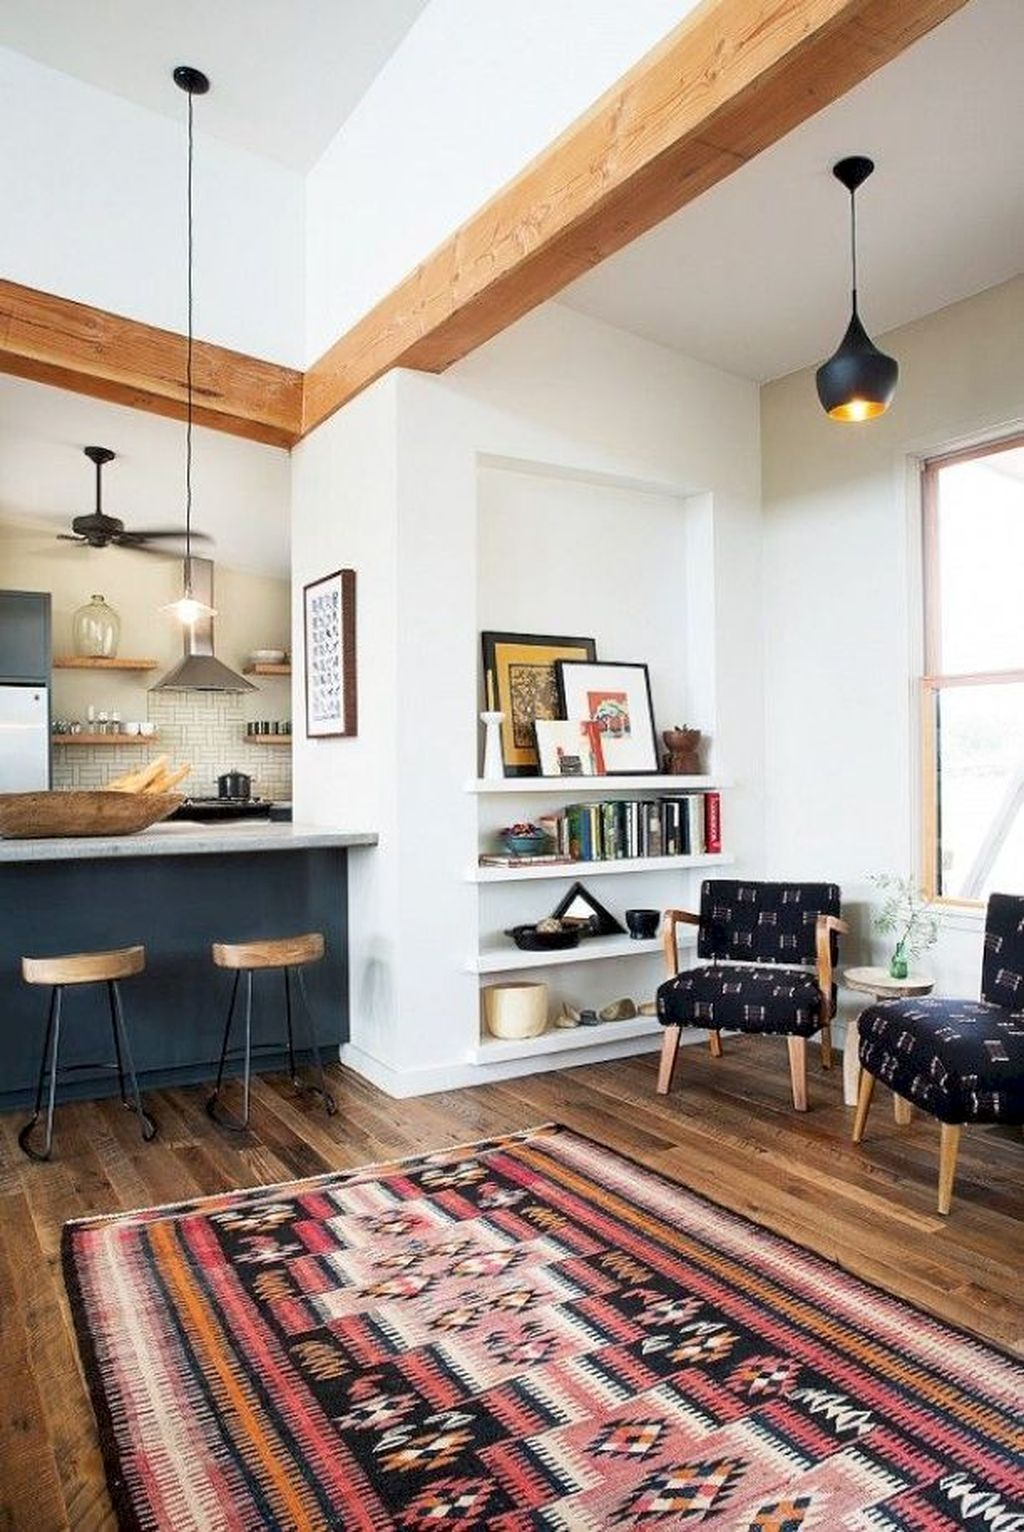 88 Modern Rustic Decor Ideas to Makes Your Apartment Look Classy ...